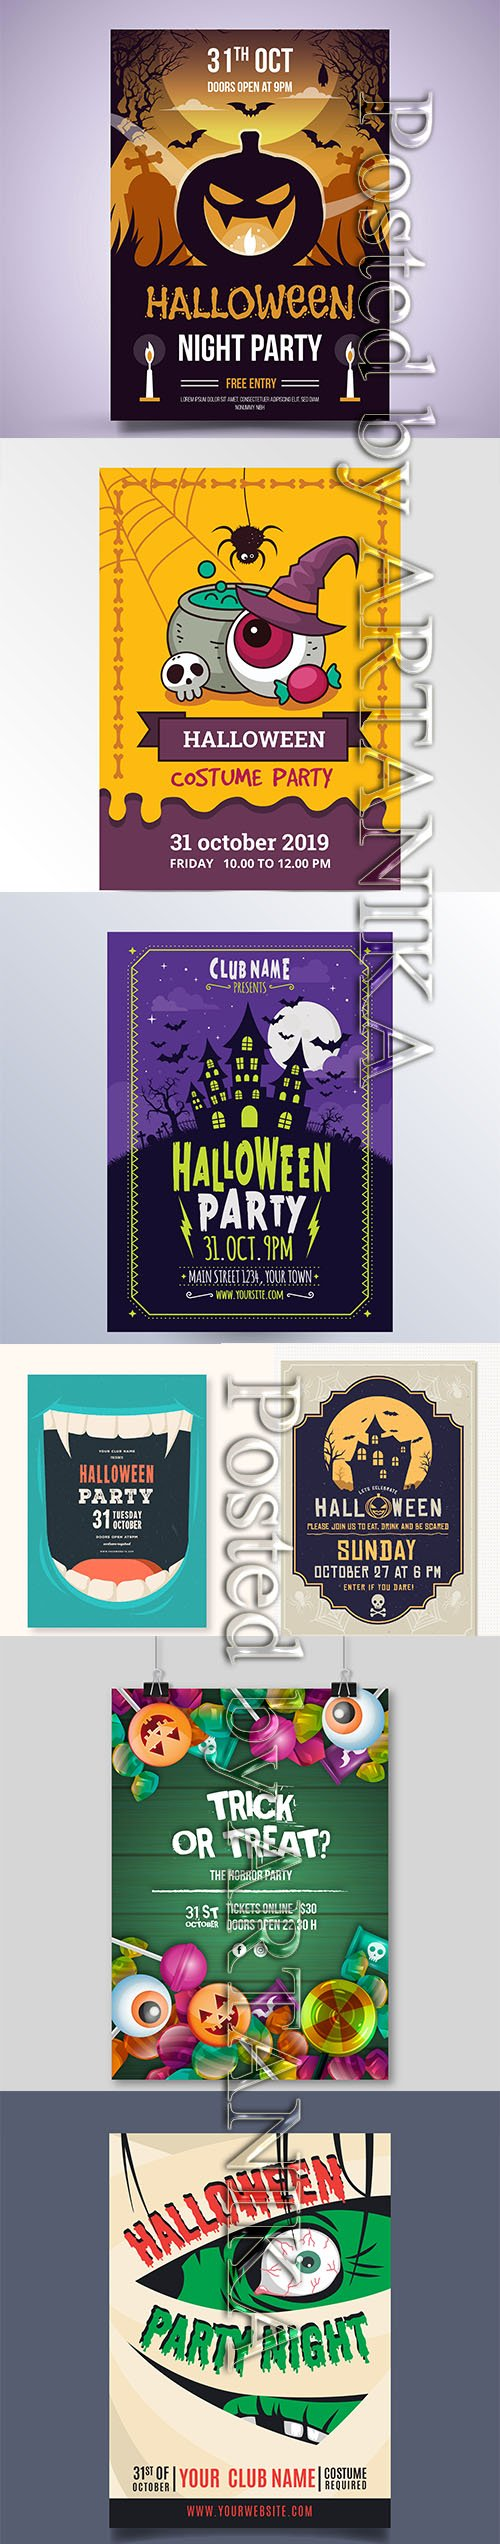 HALLOWEEN PARTY FLYERS AND POSTER PACK VOL 5